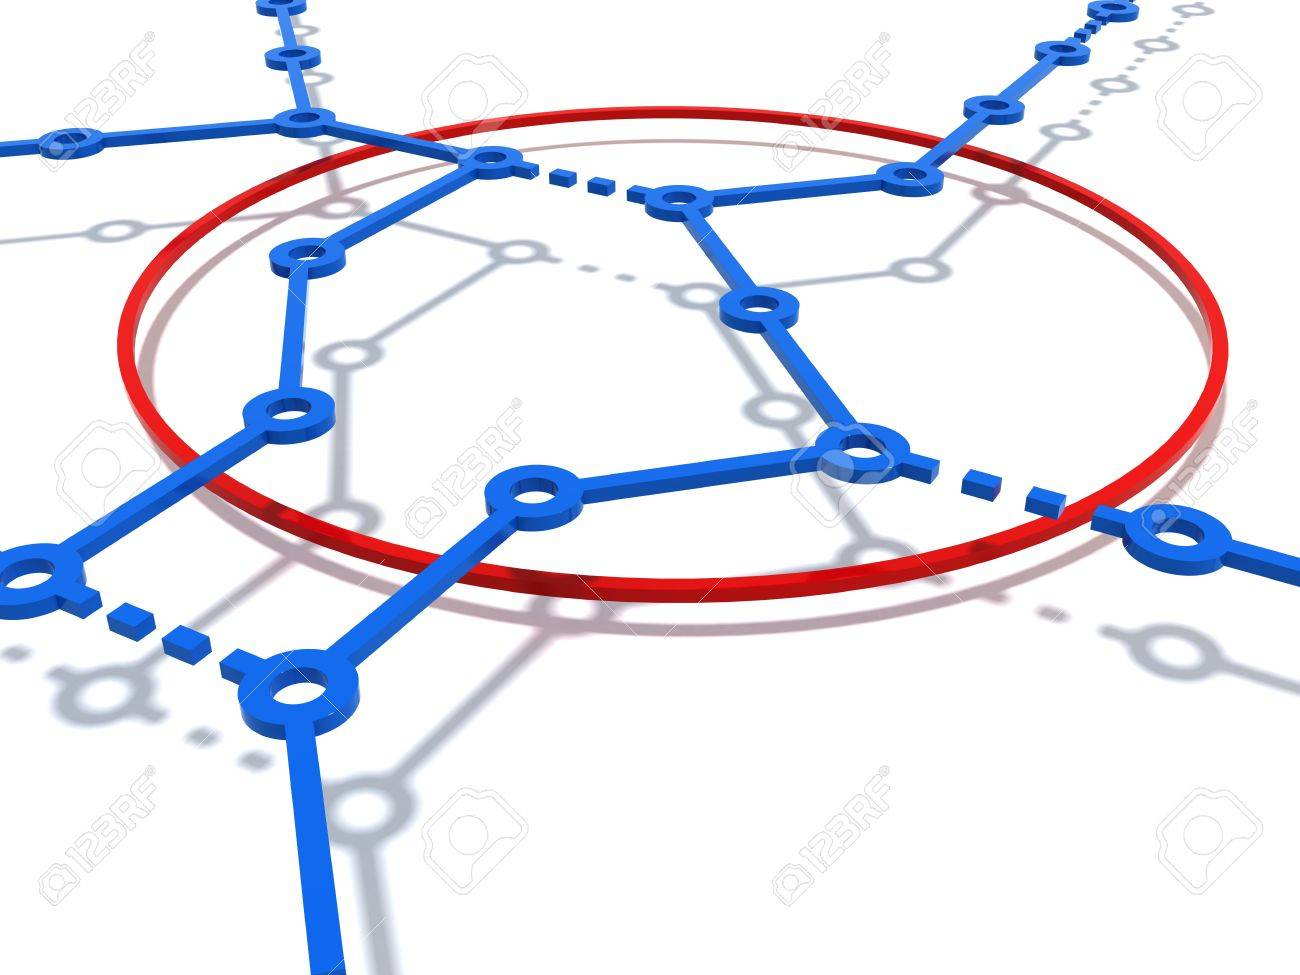 Three-dimensional model - the circuit of lines of the underground on a white background with a shadow. - 7744445